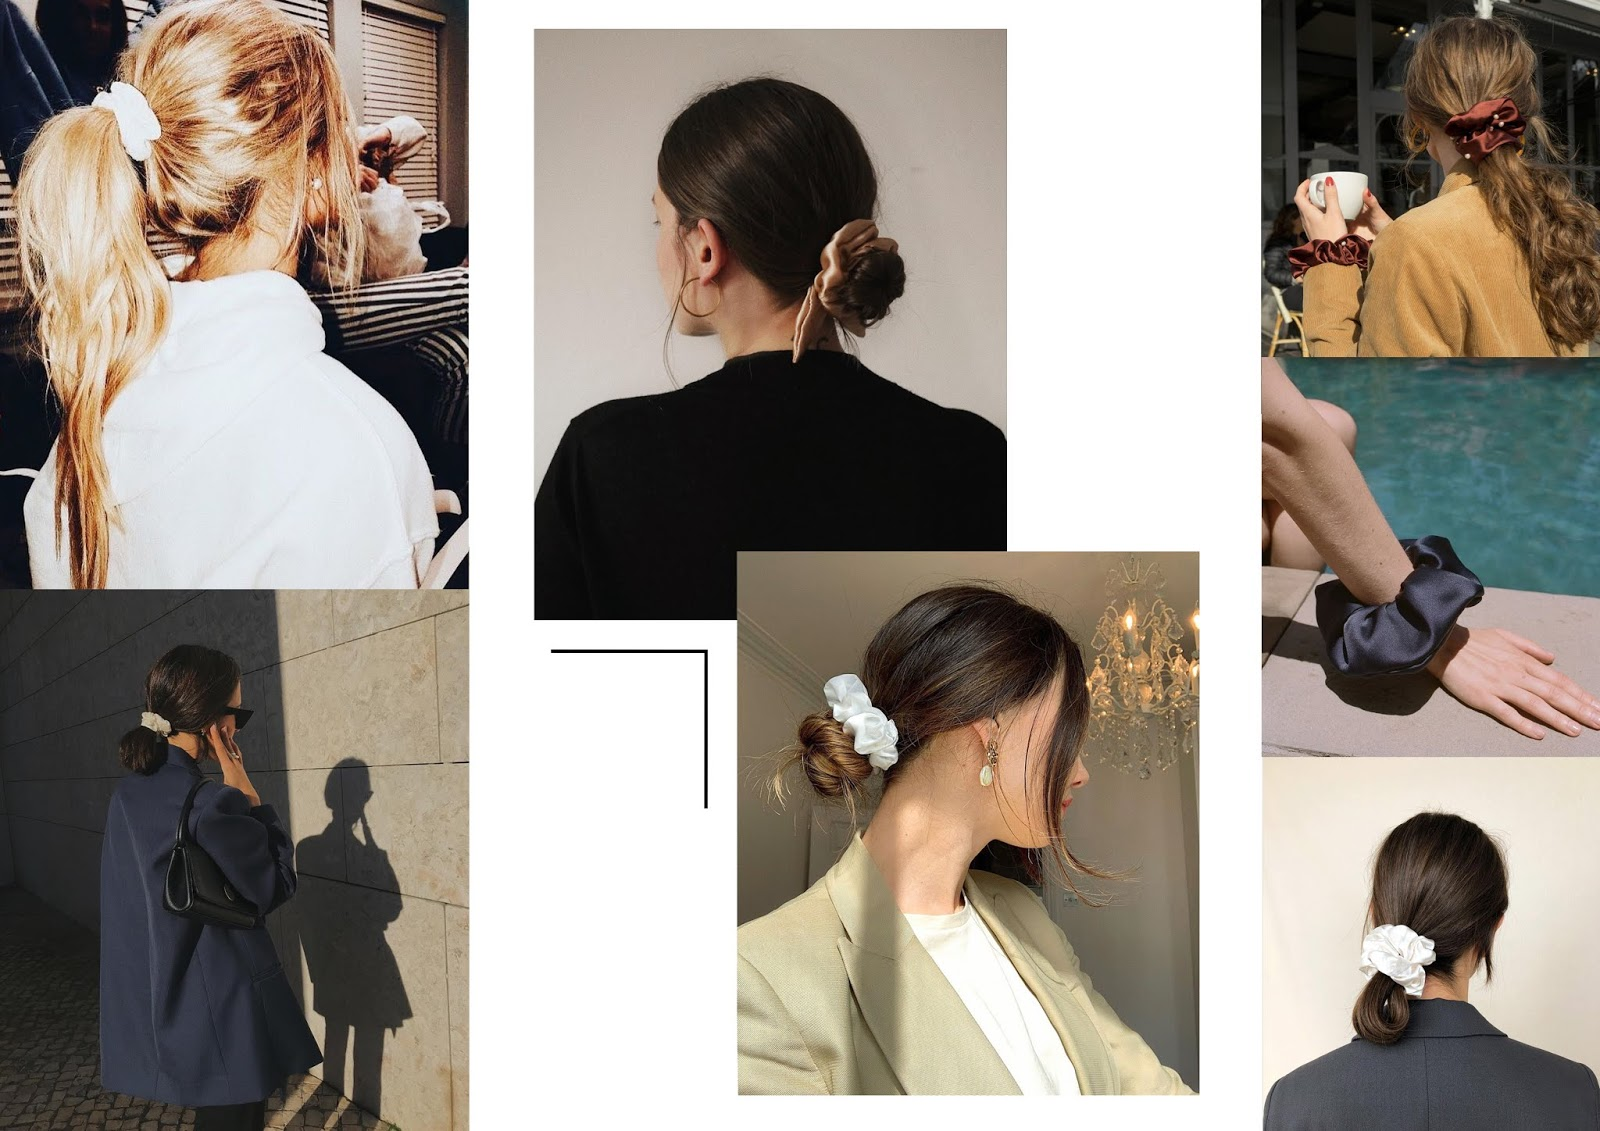 SS19, The Edit, Accessories, Hair Accessoires, Fashion, Laura Rebecca Smith, Scrunchies, Head Band, Pearl Clips, Slogan Clips, Hair Scarves, Bows,